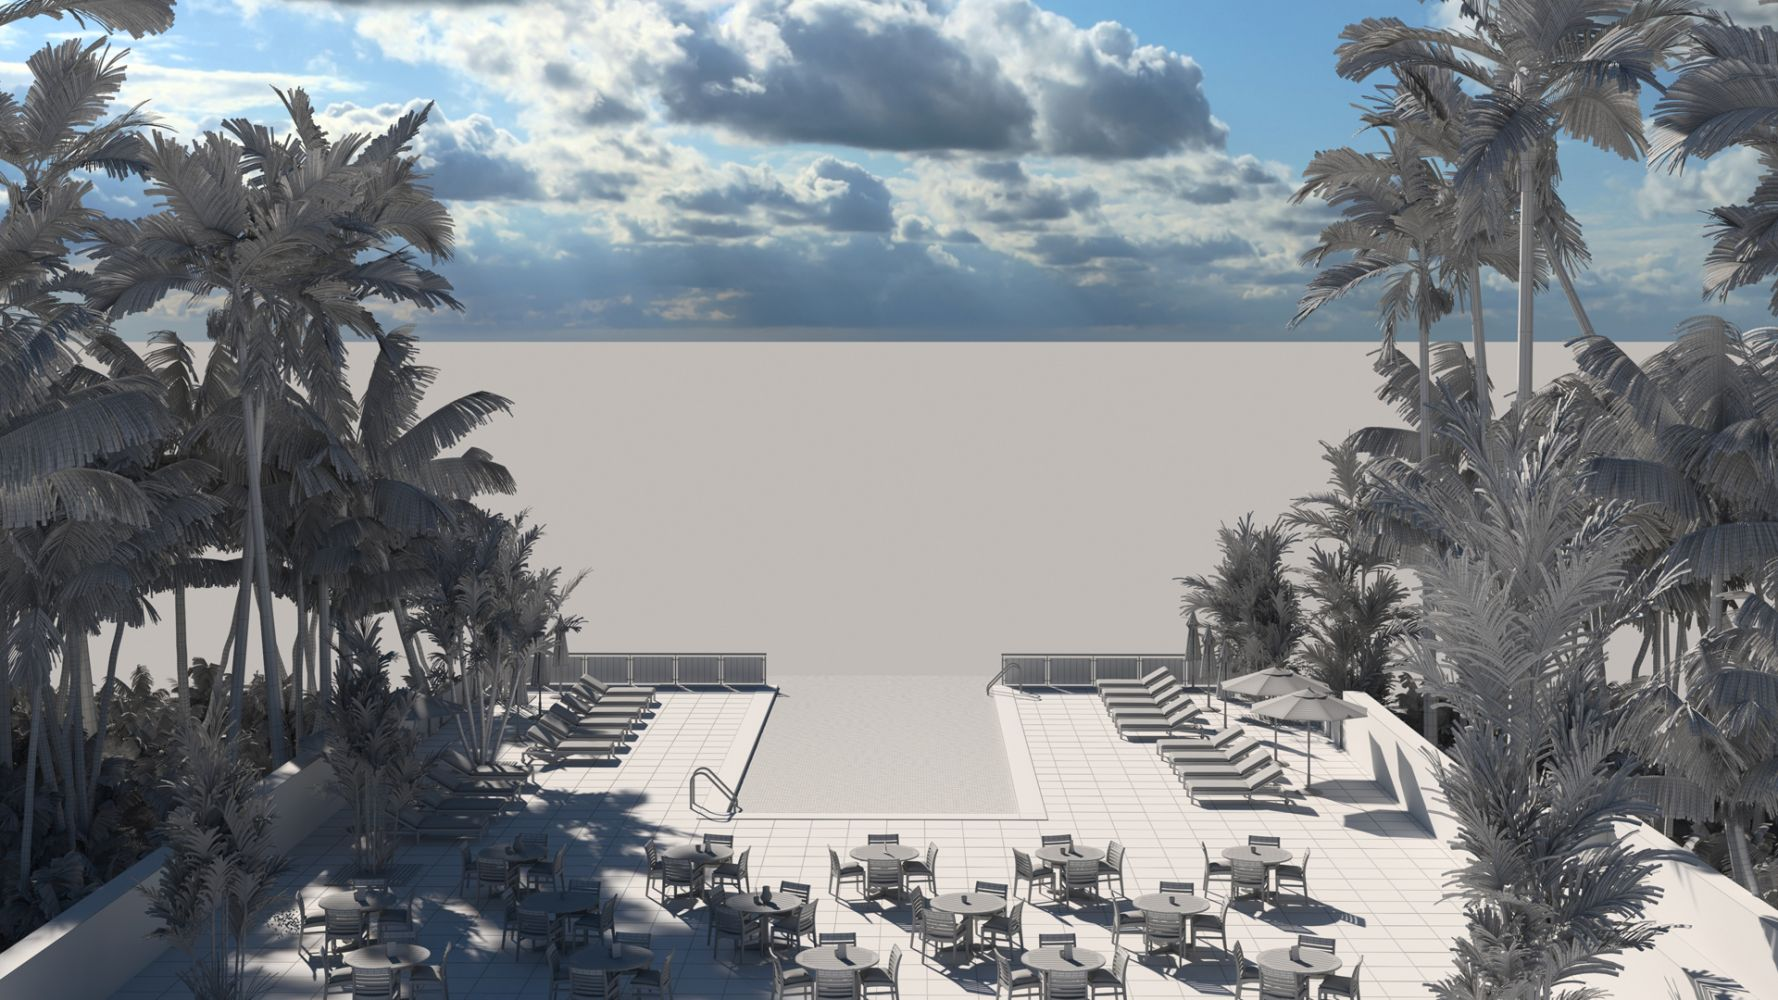 Luxury hotel pool deck with tropical sea views. Photoreal Architectural Visualisation 3D Render